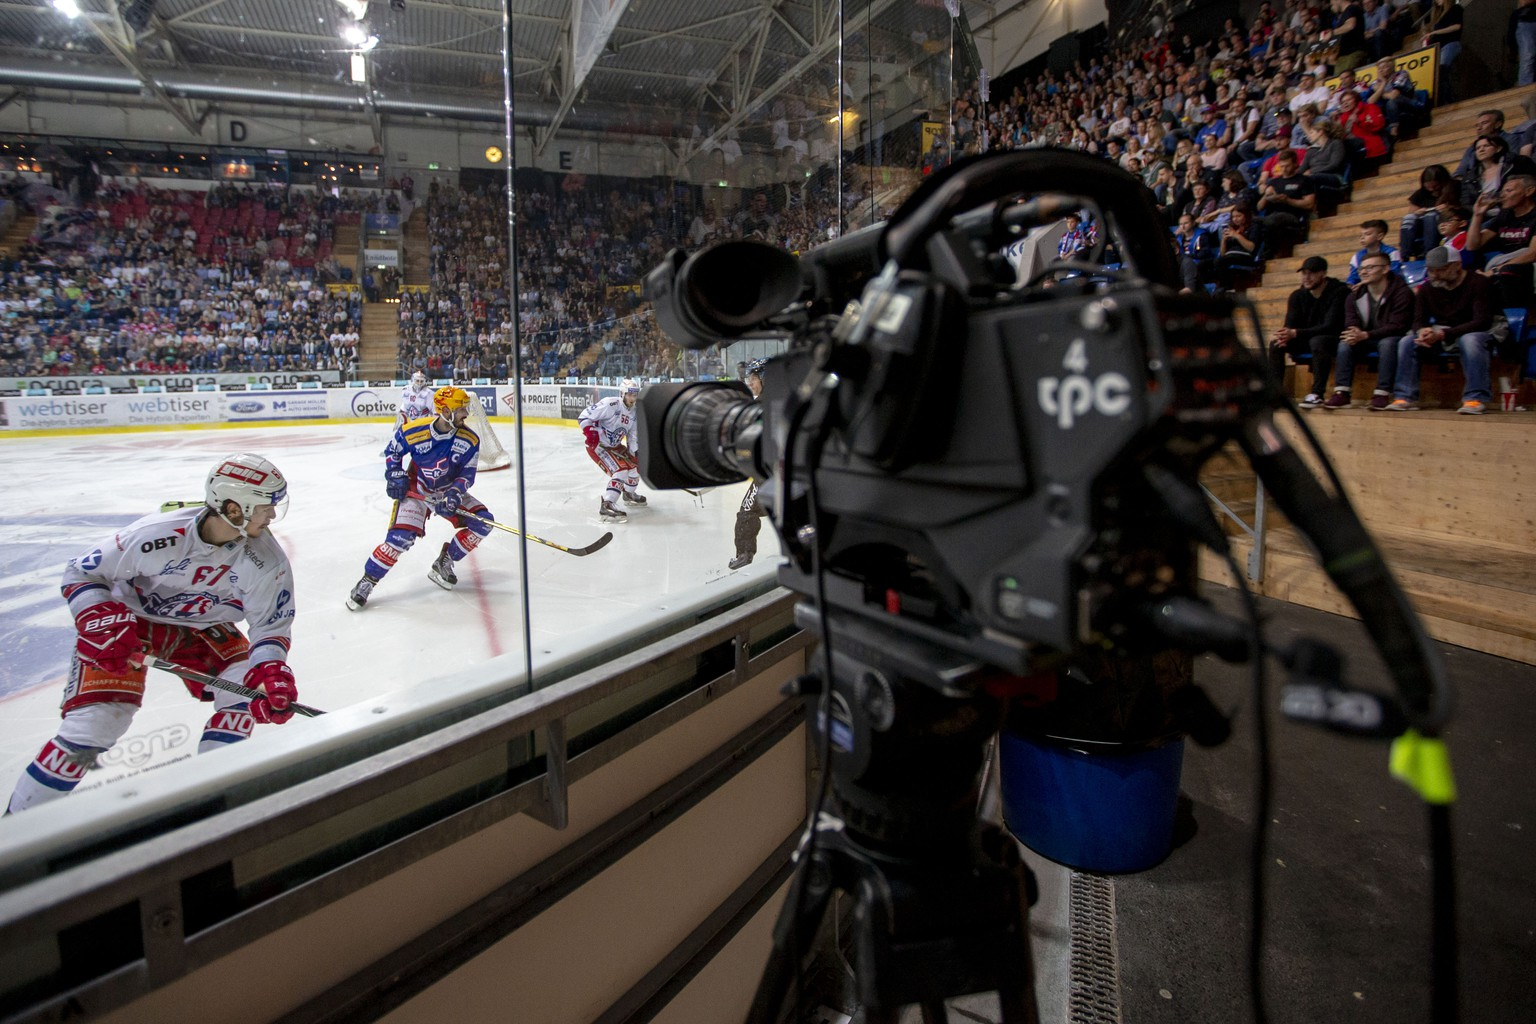 Eine nicht bediente TV Kamera der Produktionsfirma tpc im fuenften Eishockey Spiel der Ligaqualifikation der National League zwischen dem EHC Kloten und dem SC Rapperswil-Jona Lakers am Samstag, 21. April 2018, in Kloten. (KEYSTONE/Patrick B. Kraemer)